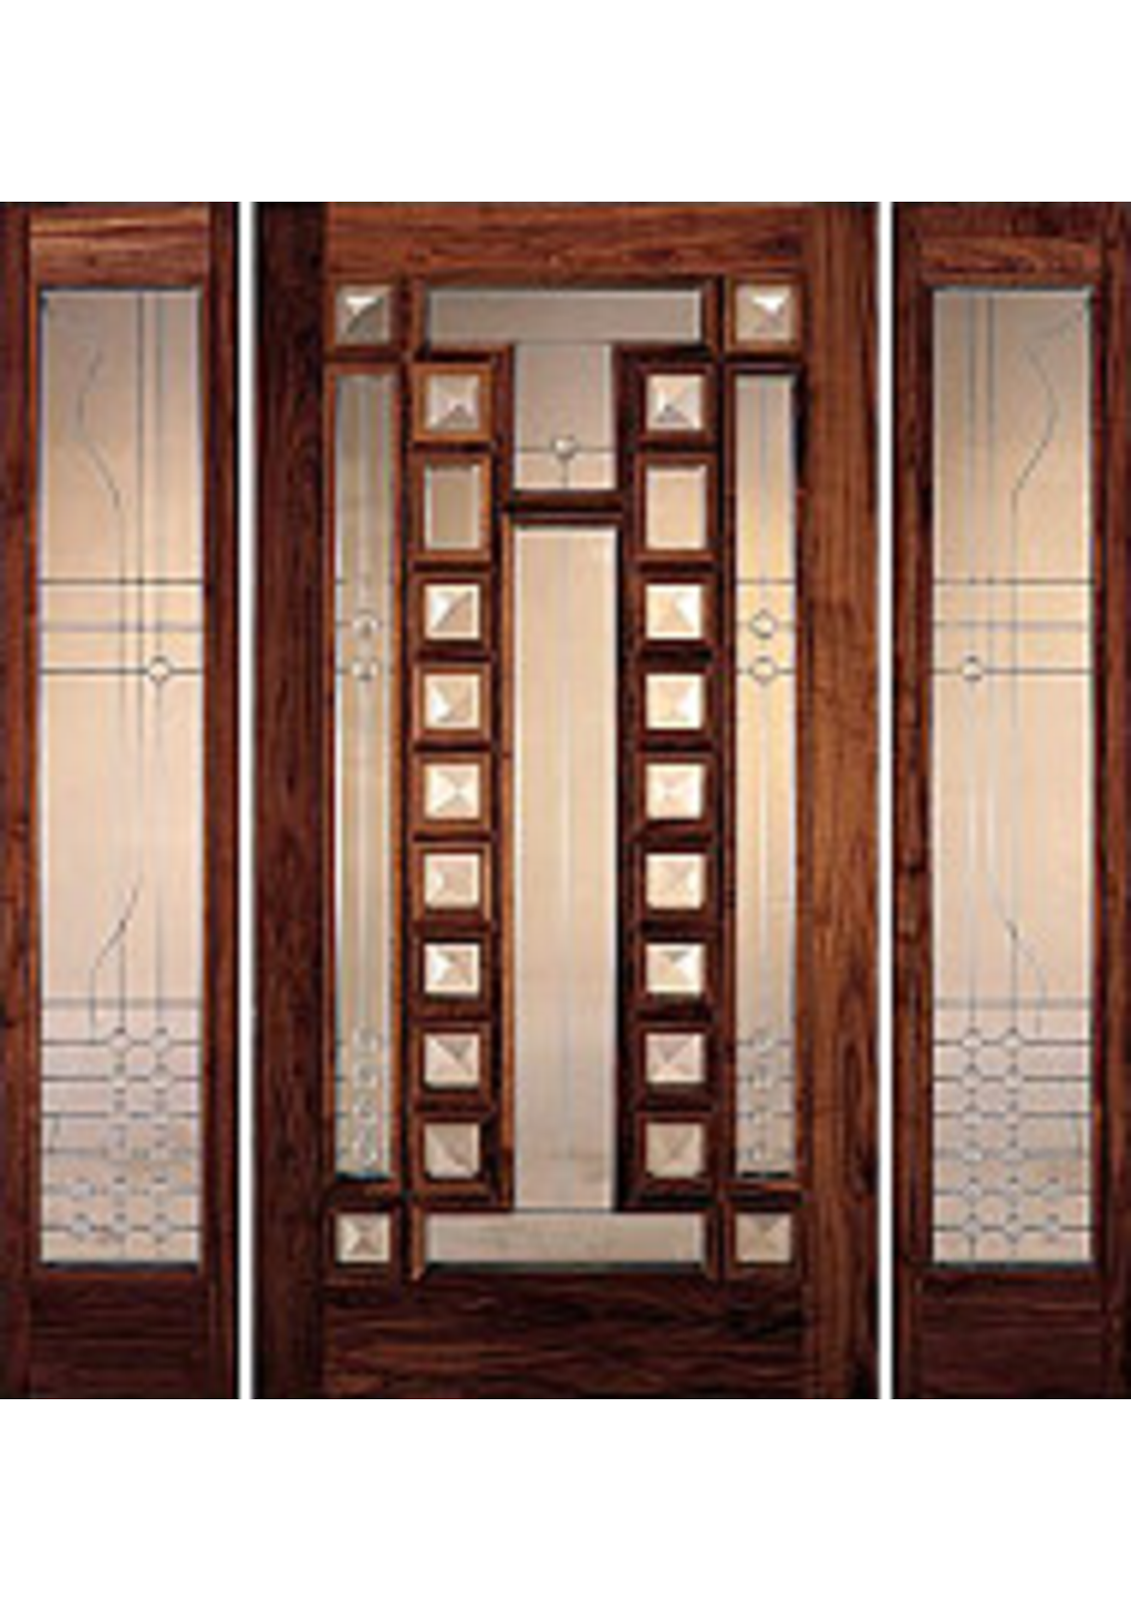 Foundation dezin decor doors design for Room door design for home